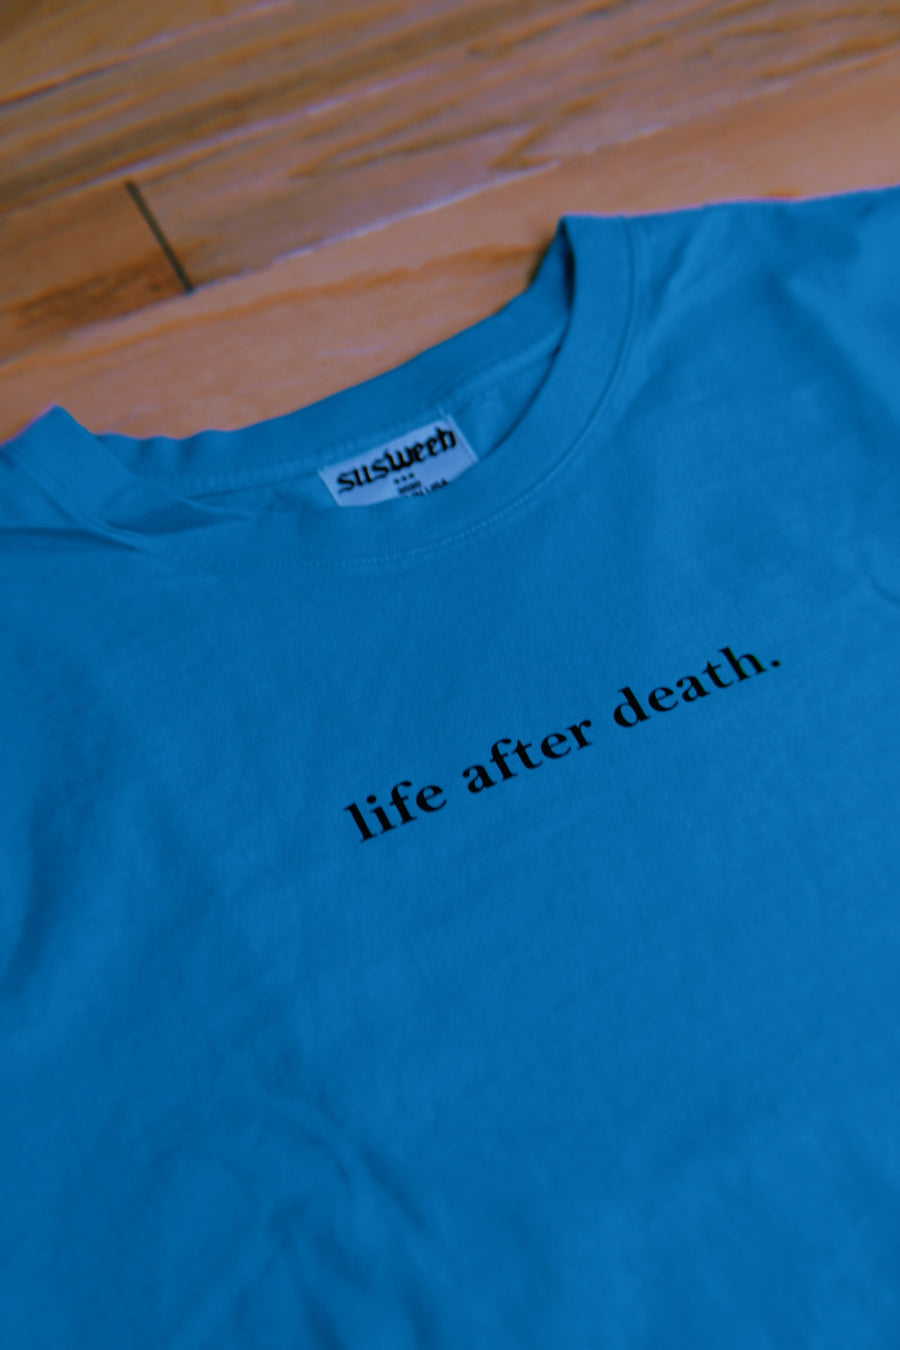 LIFE AFTER DEATH V1 Teal T-Shirt